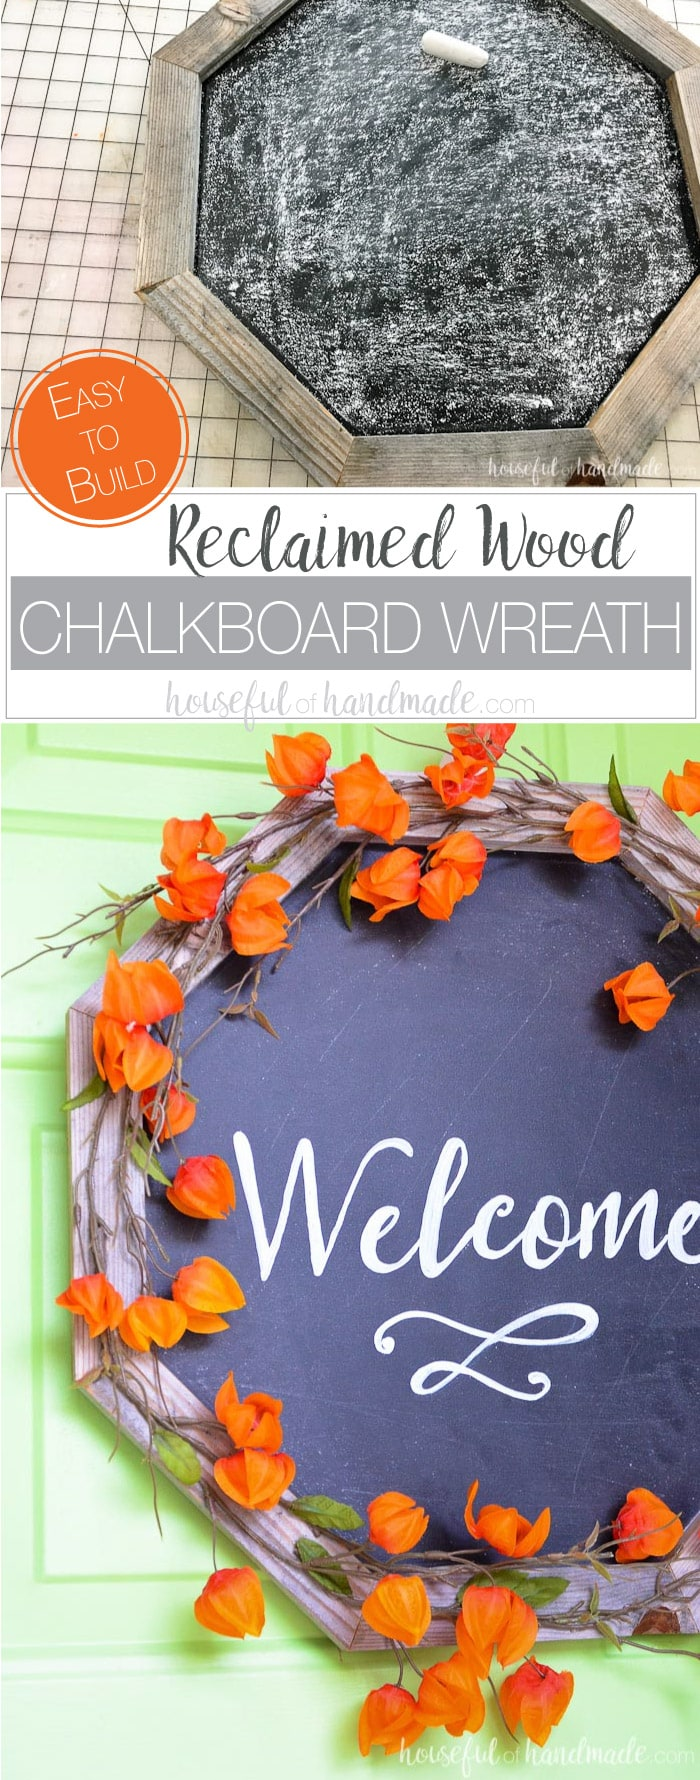 Learn how to build an octagon wreath form out of wood to create this beautiful chalkboard wreath. Made from reclaimed wood, it's the perfect farmhouse wreath. Housefulofhandmade.com